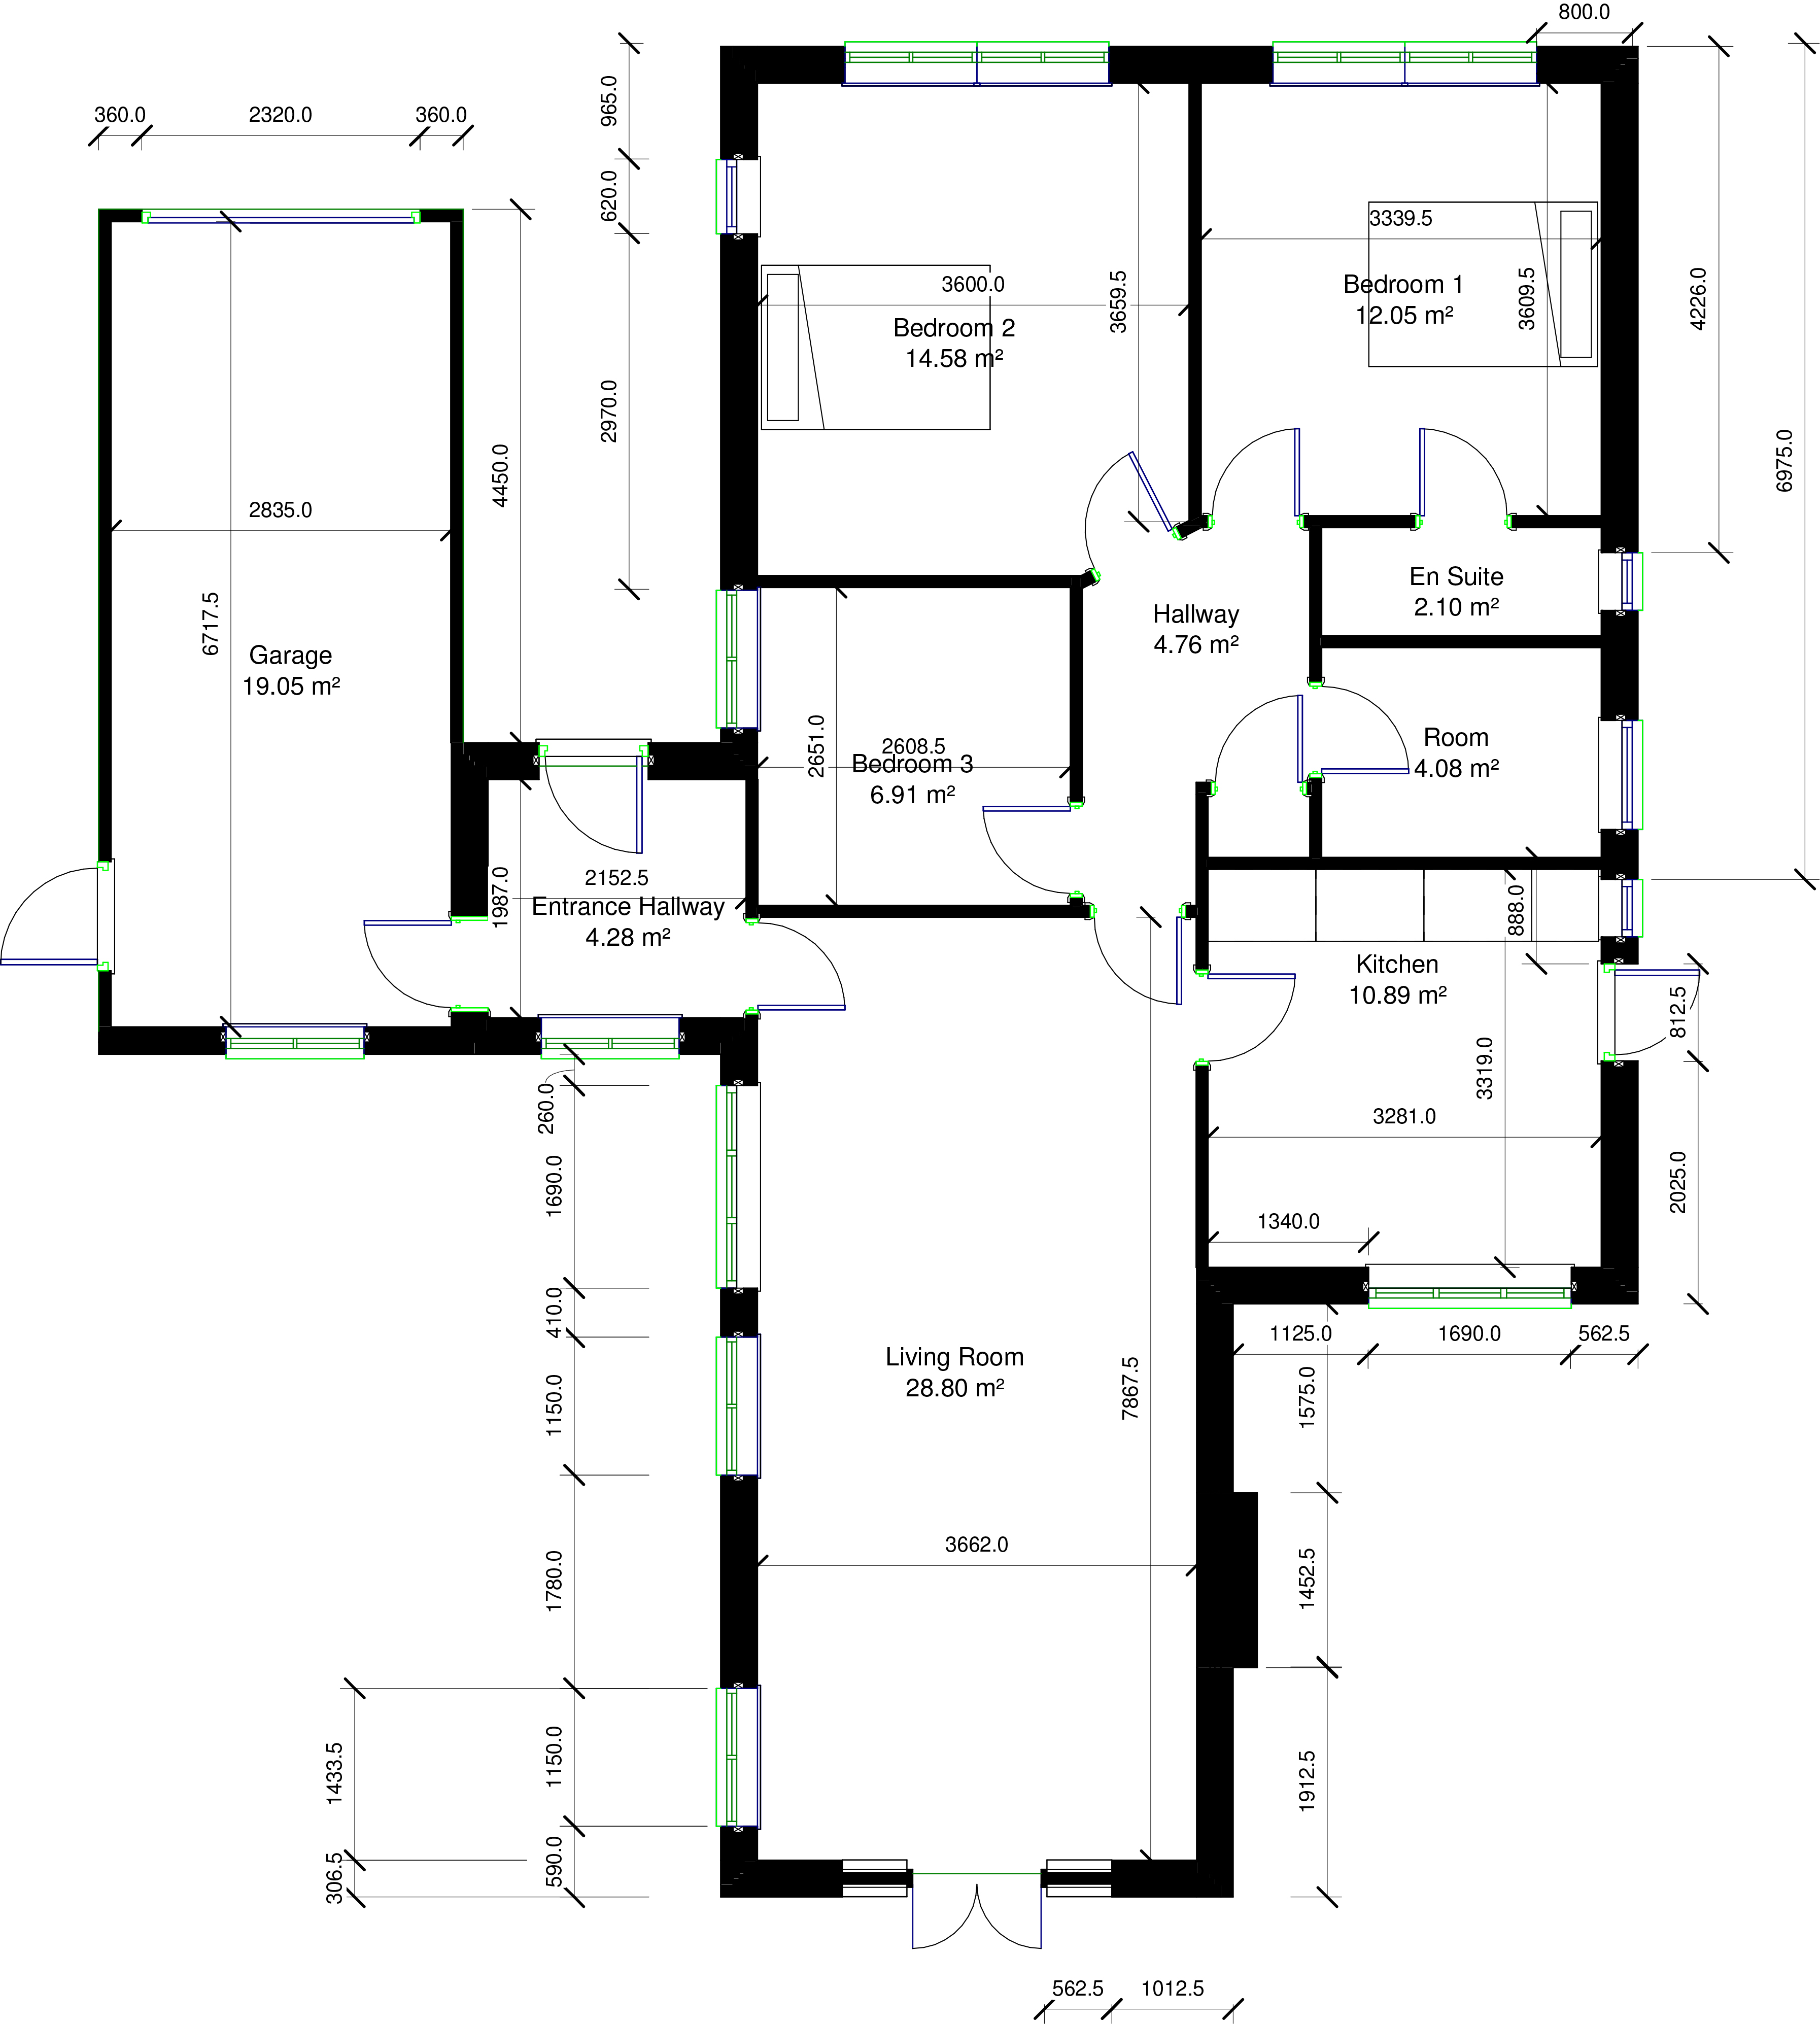 House Extension, the Roughs - Hive Design Studio on house investor, house layout, house styles, house bed, house services, house logo, house investigator, house interior ideas, house design, house plans, house journal, house painter, house powerpoint, house construction, house architect, house fans, house planning, house project, house family, house worker,